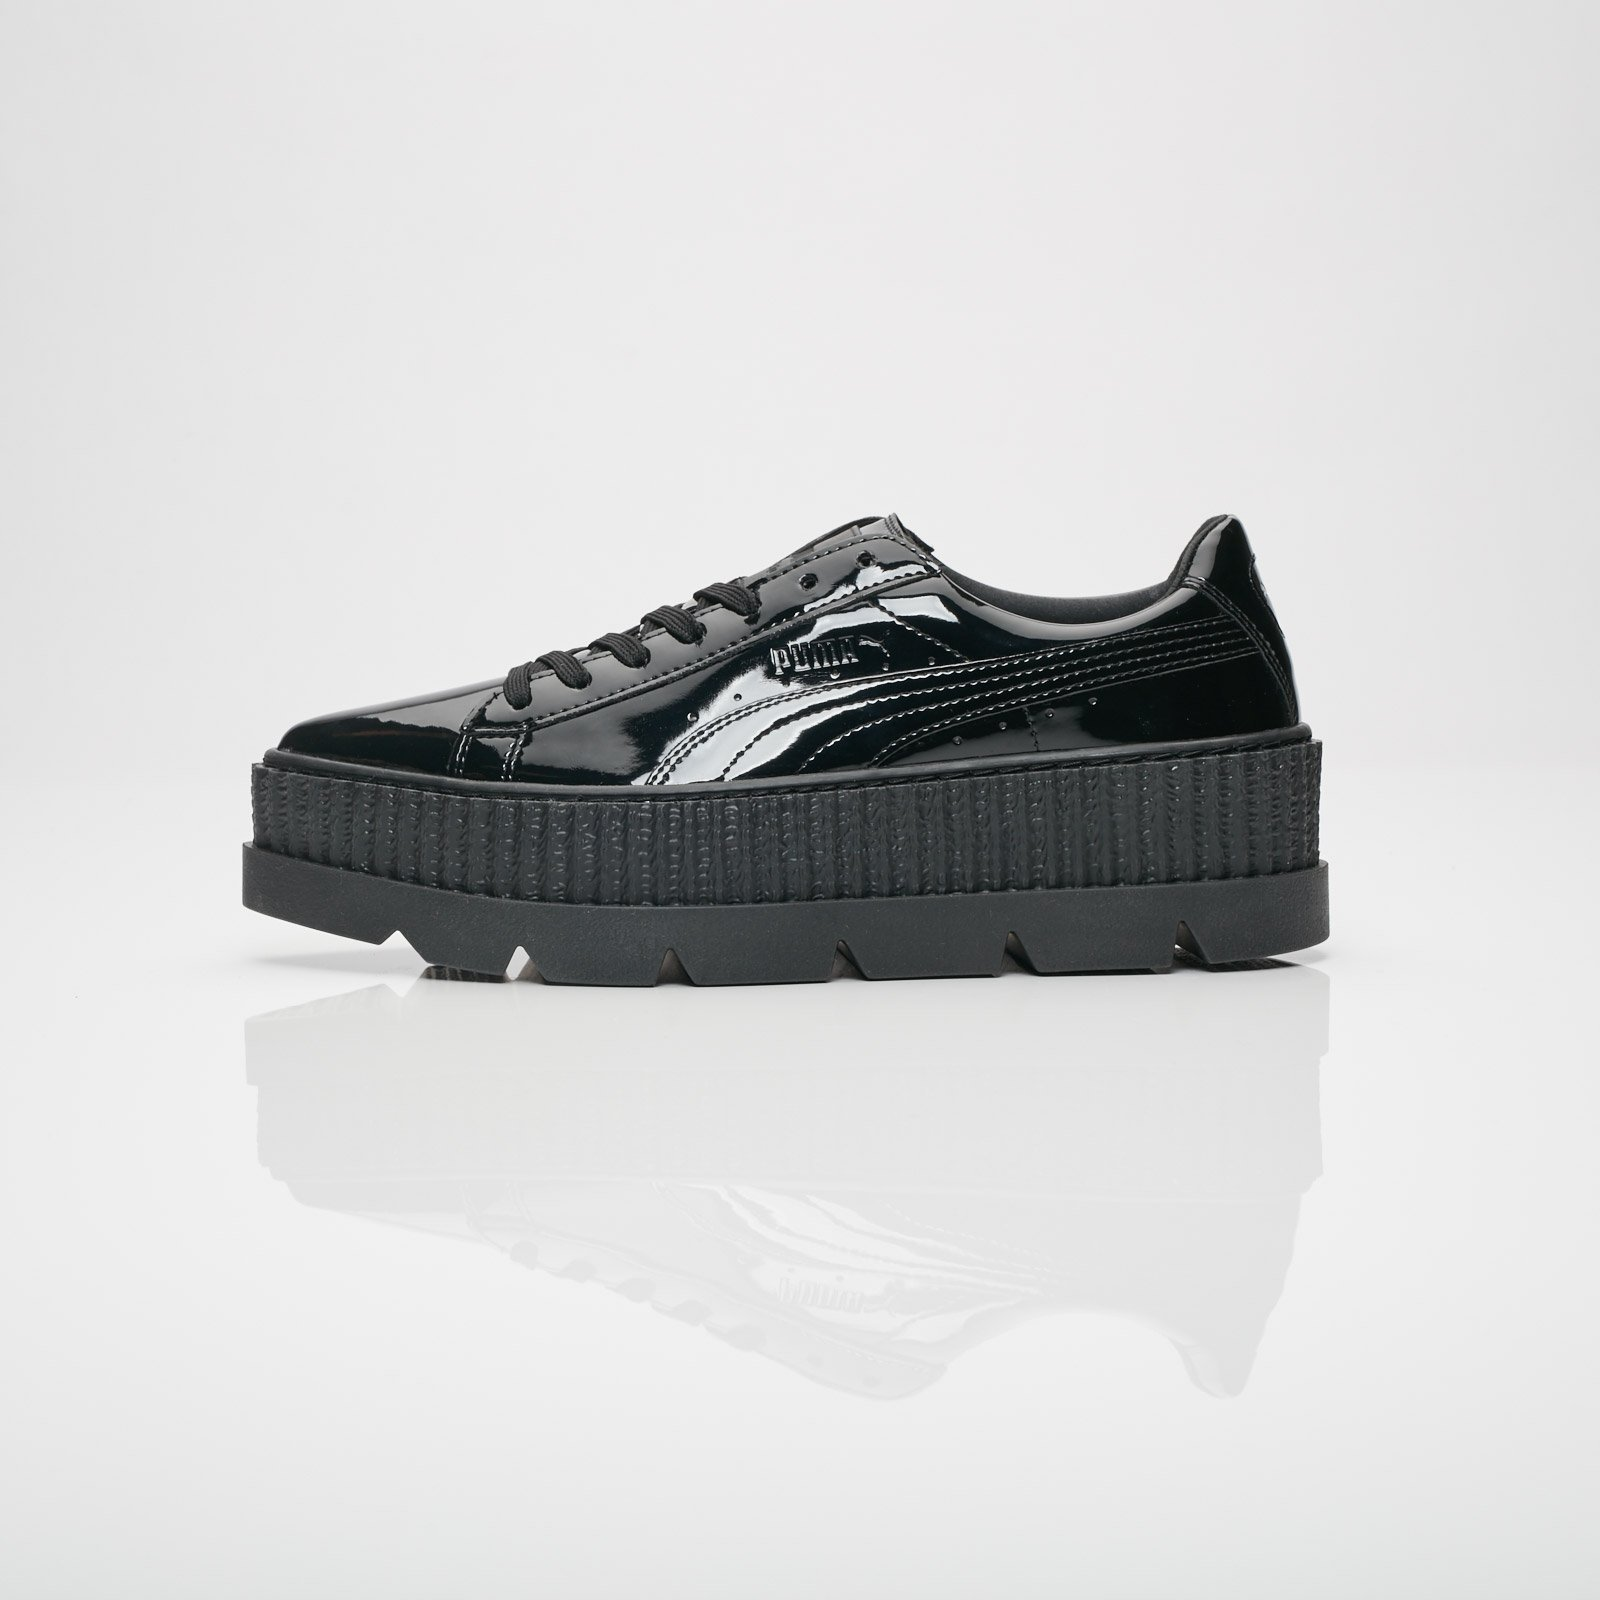 Puma Pointy Creeper Patent Wns 366270 01 Sneakersnstuff